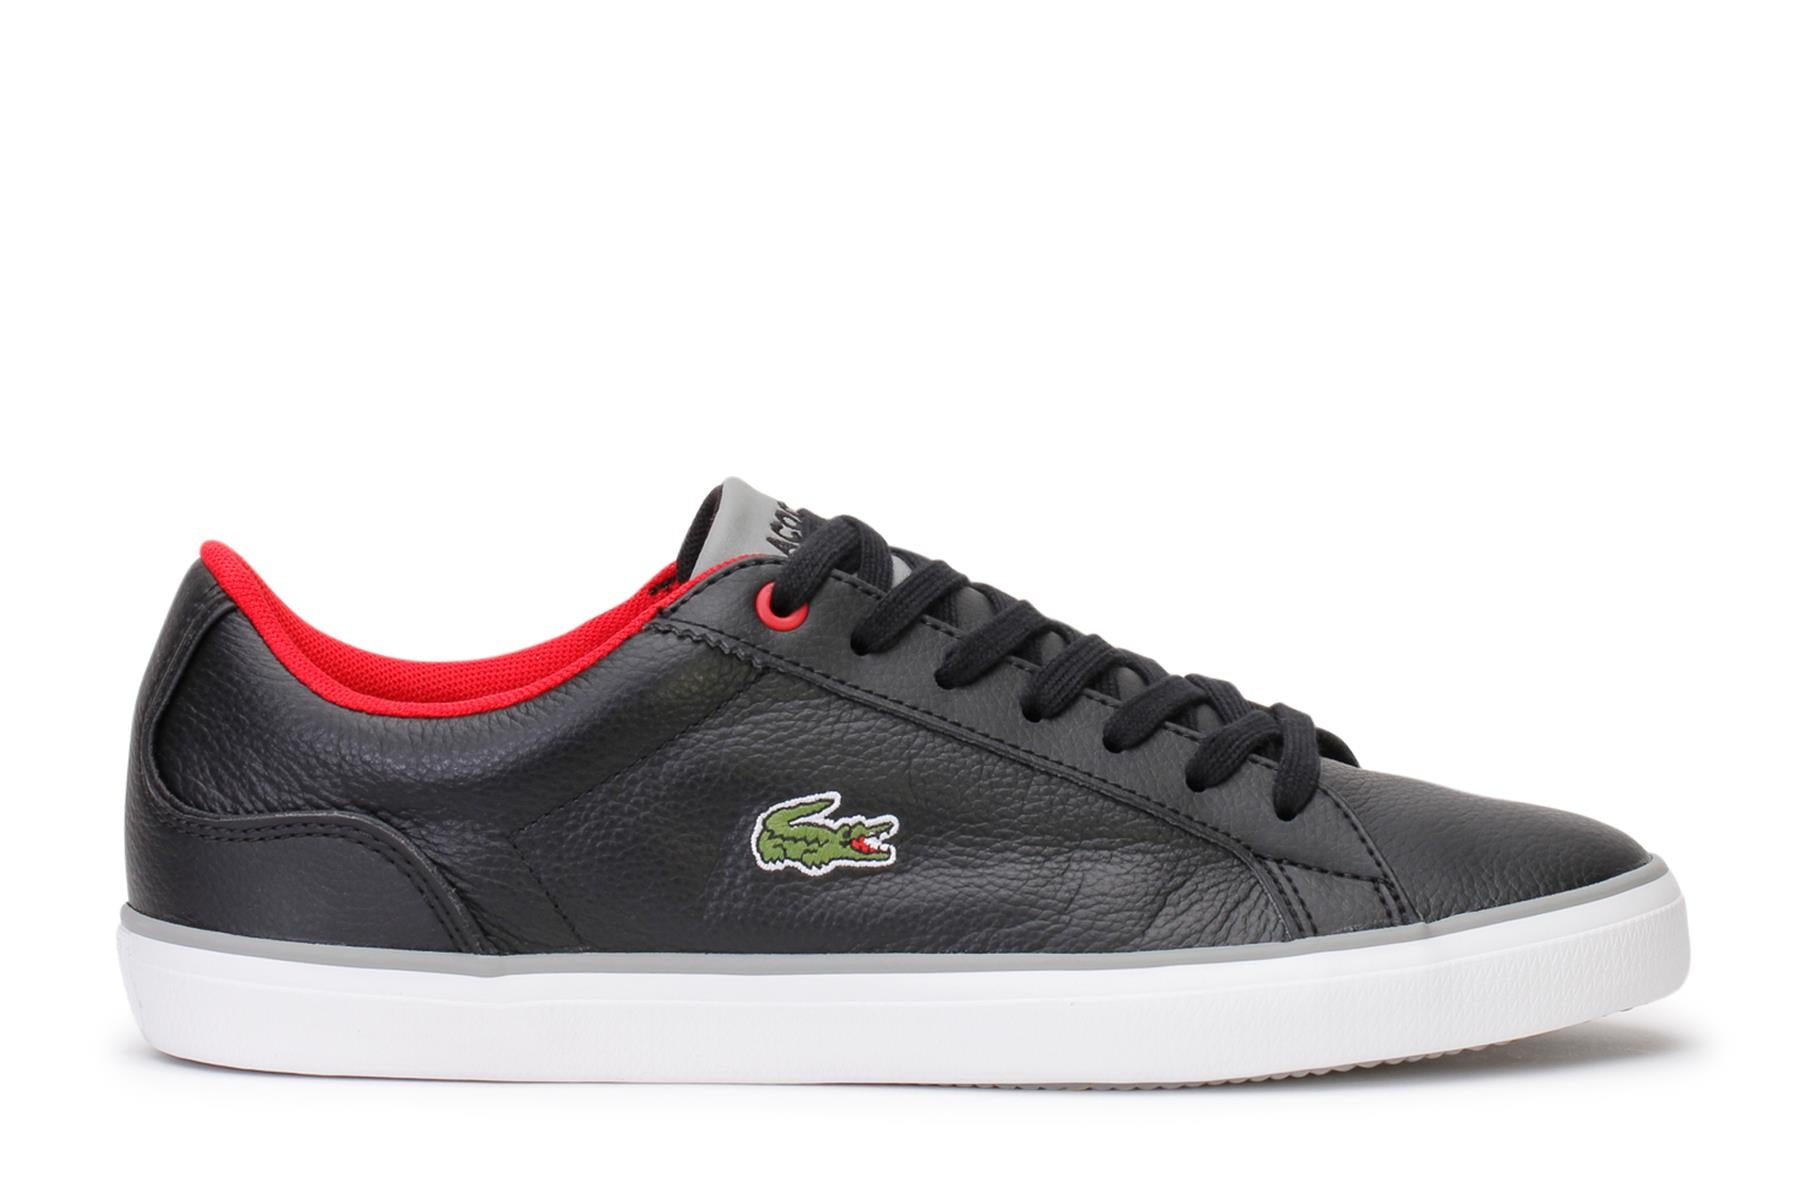 lacoste-mens-casual-sneakers-lerond-317-us-cam-black-grey-leather-main